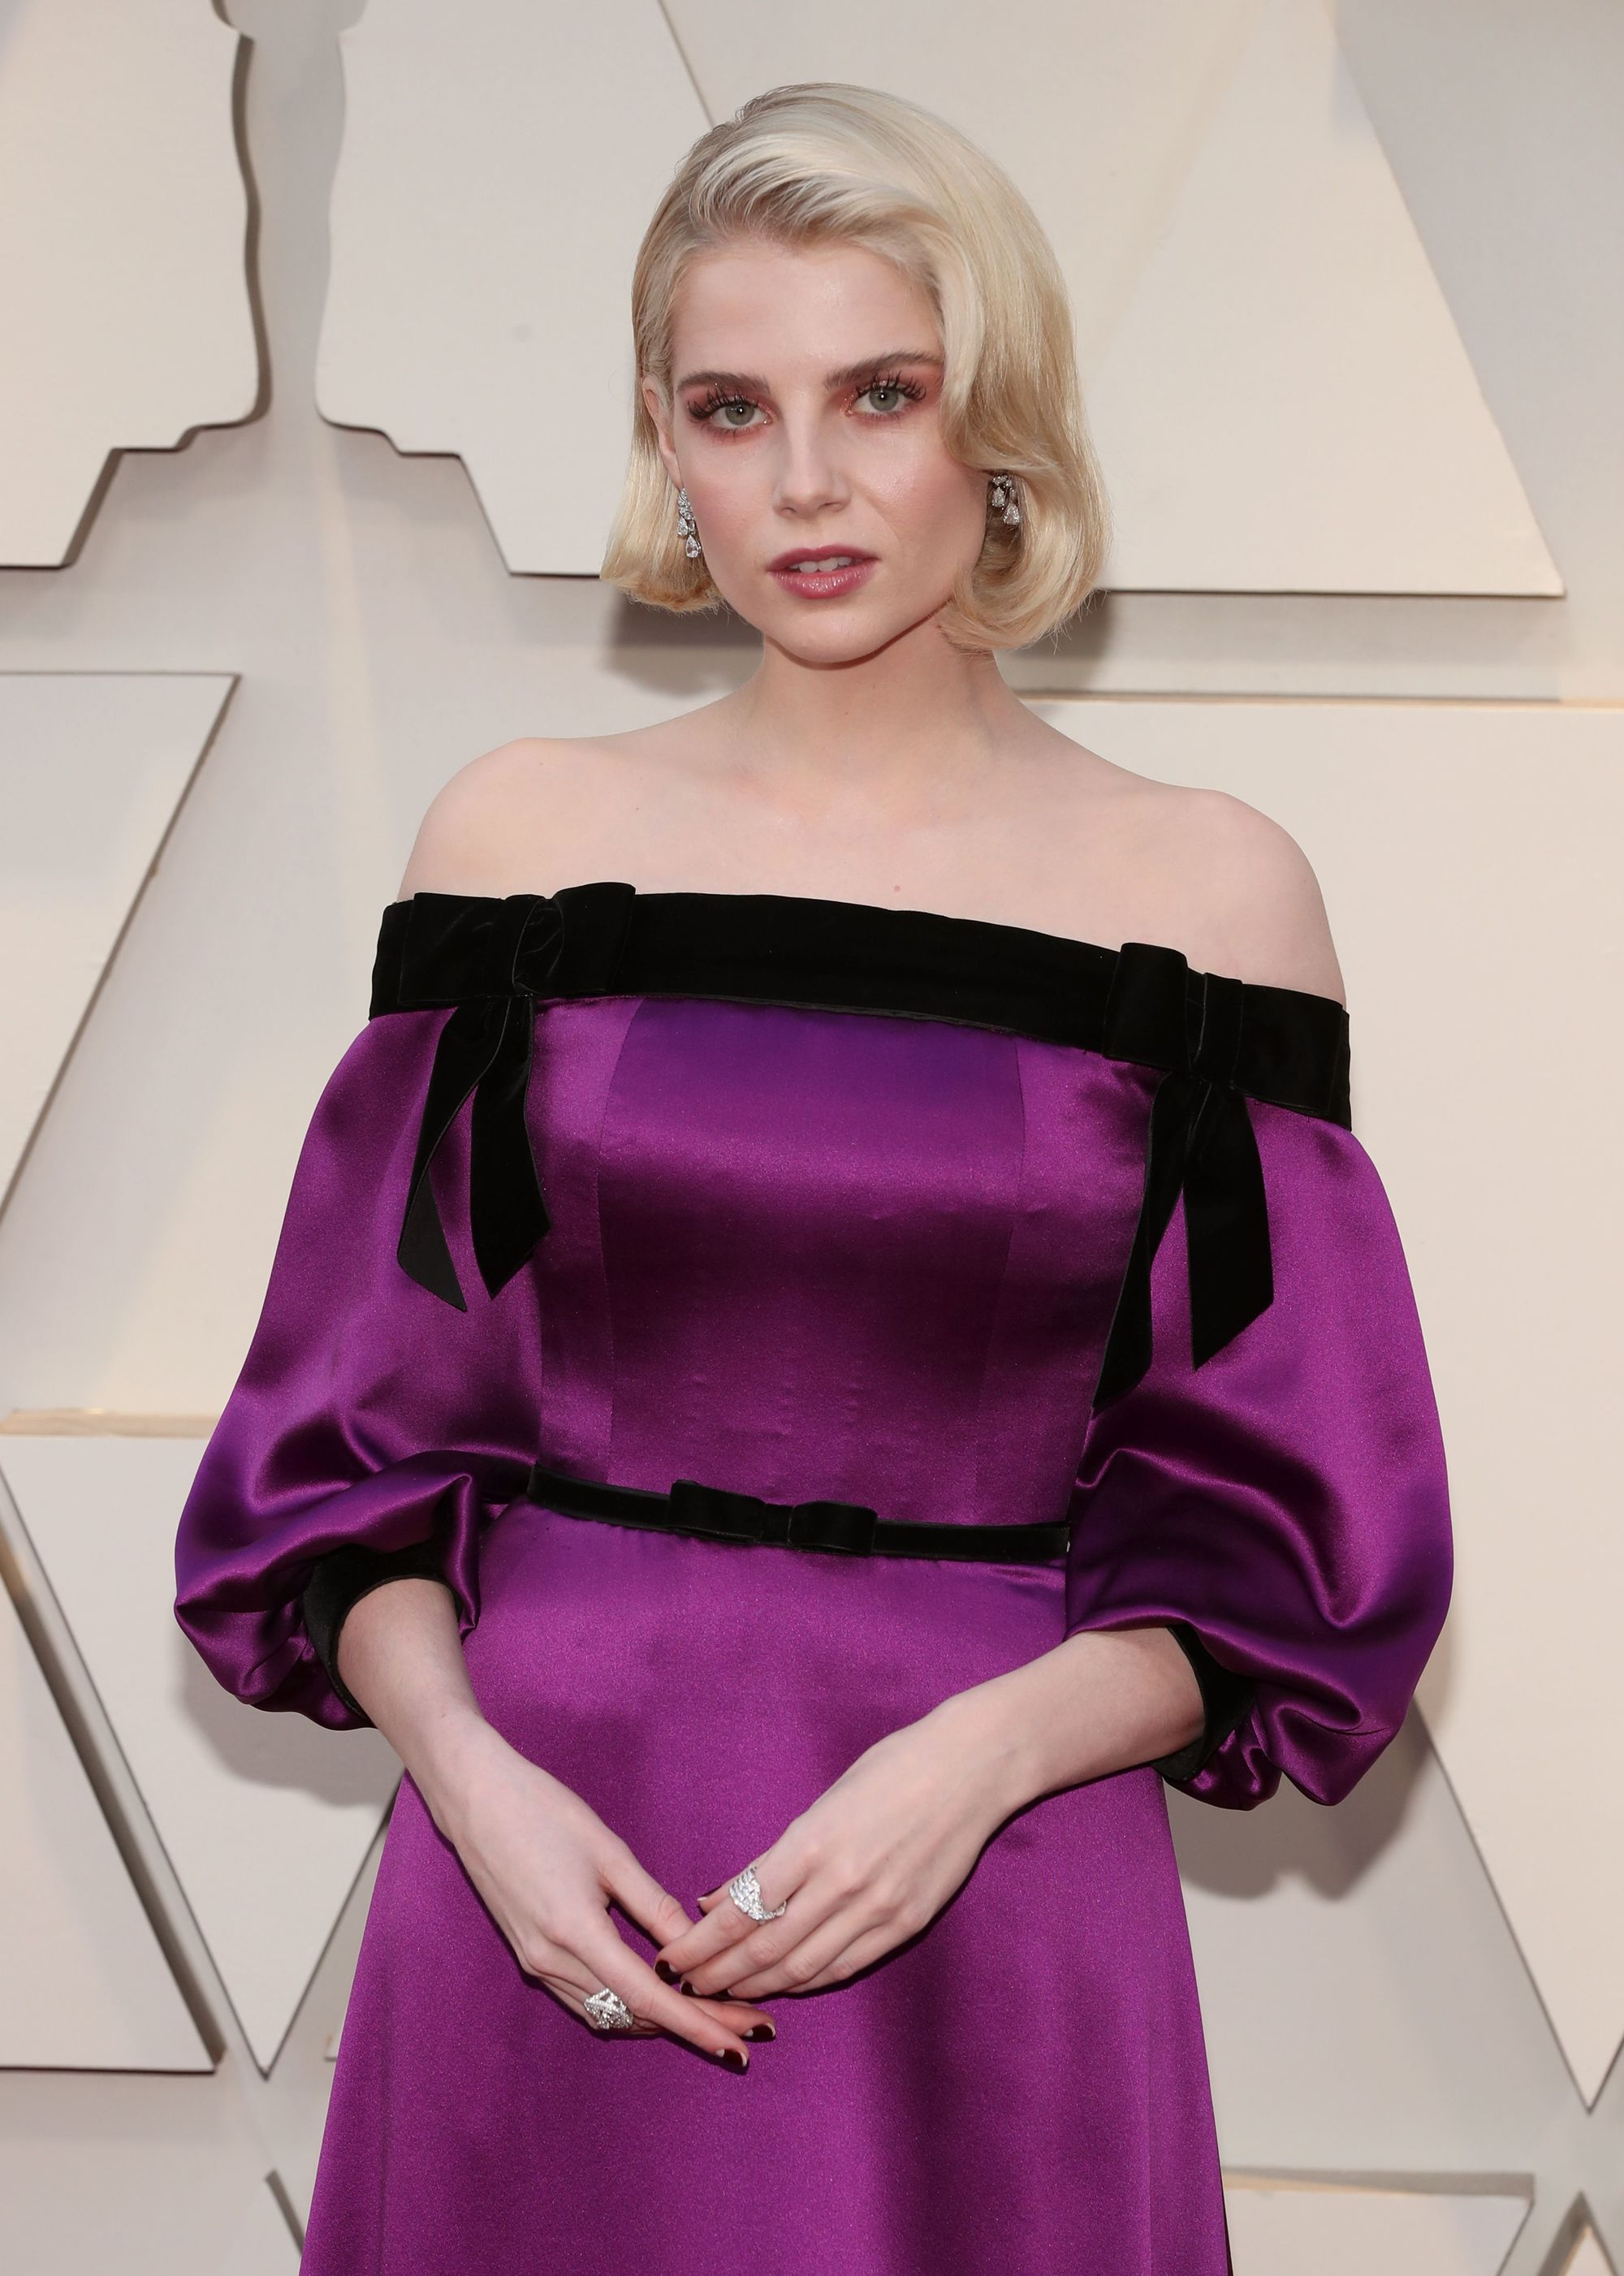 Oscars 2019 hairstyles: Lucy Boynton at the 2019 Oscars with her blonde bob length hair in '50s inspired Hollywood waves